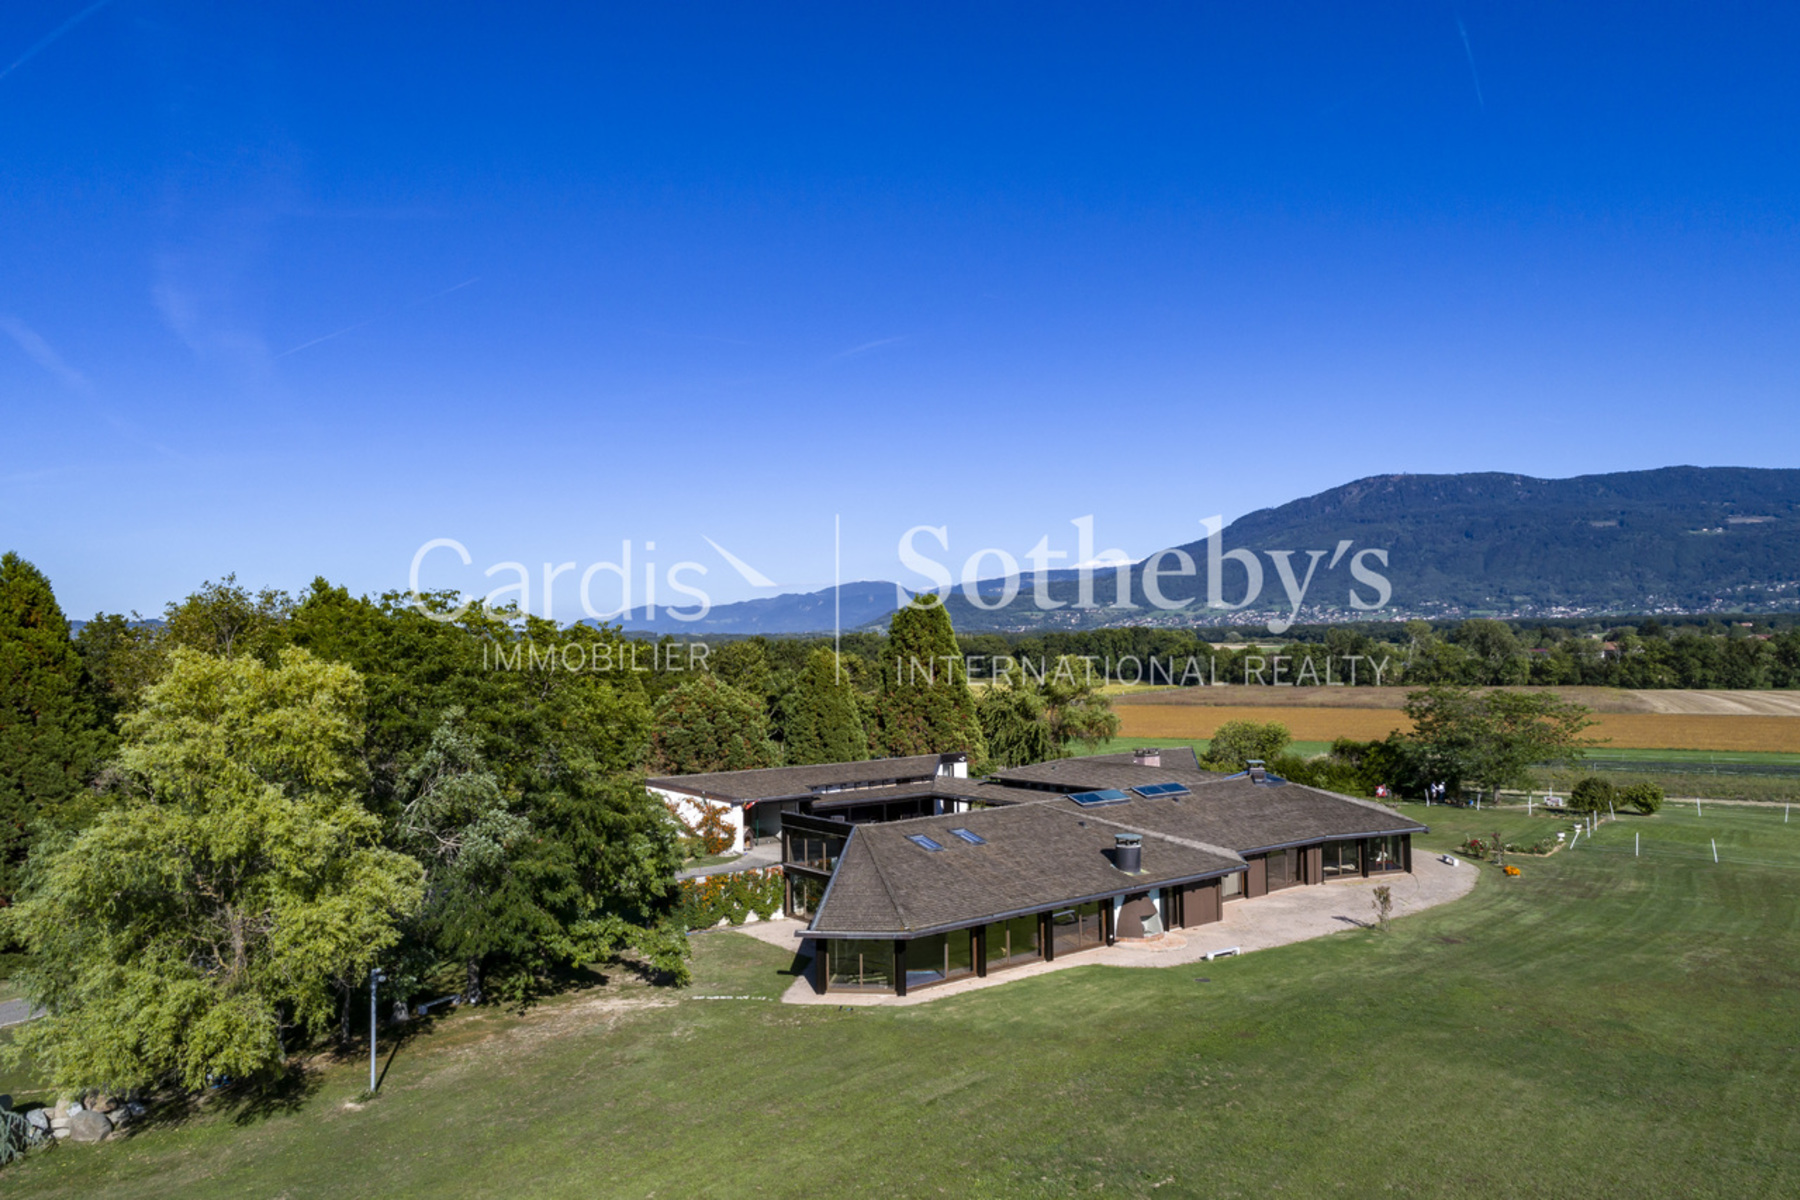 Property for Sale at Exclusivity : Idyllic location for this exceptional property. Gy Other Geneve, Geneva 1251 Switzerland